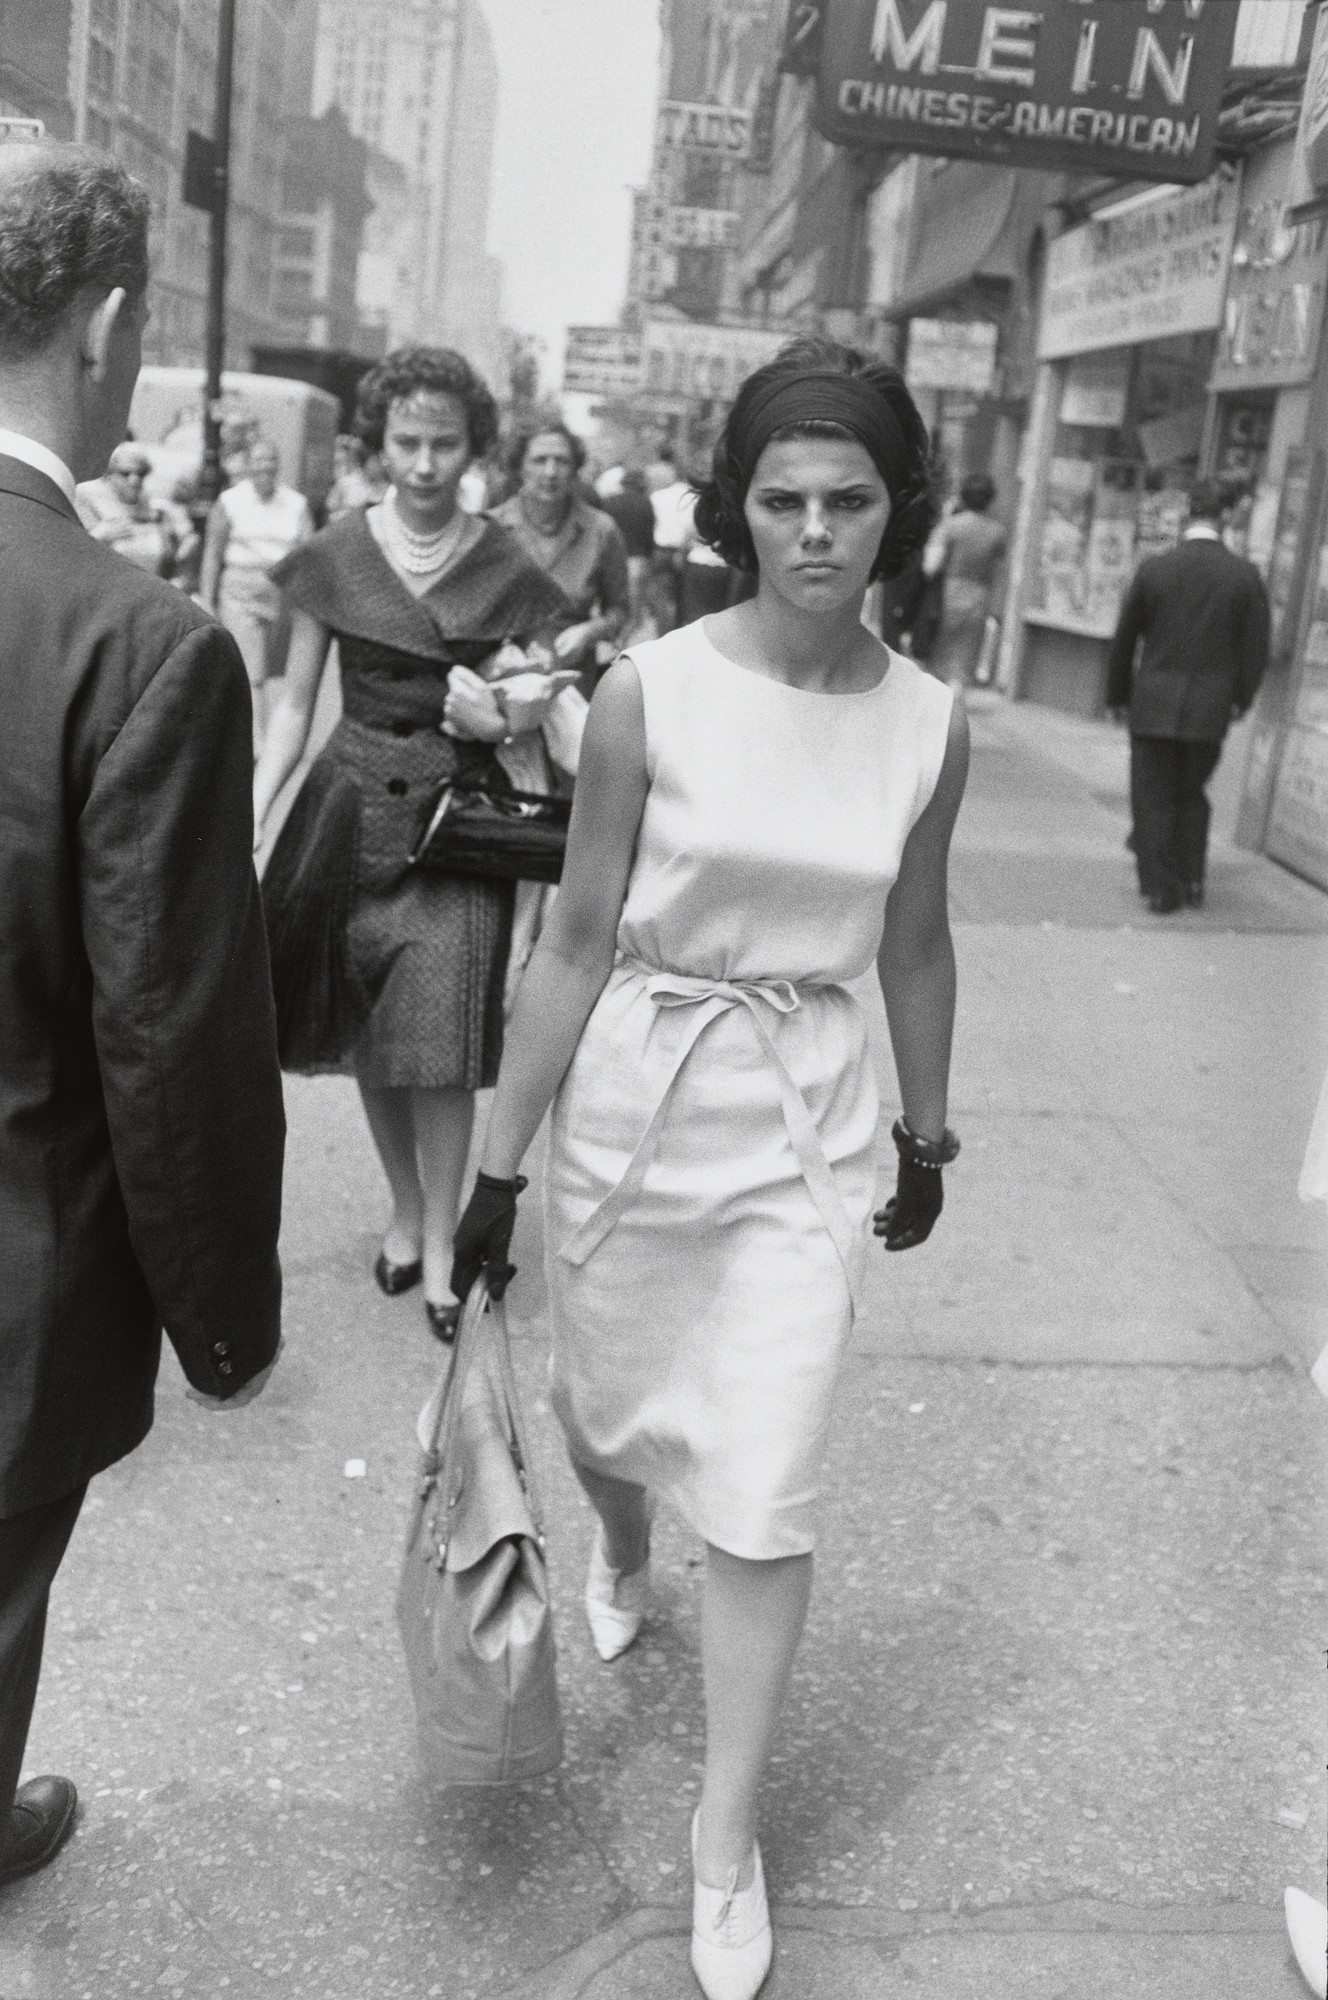 Garry Winogrand. New York City. 1961